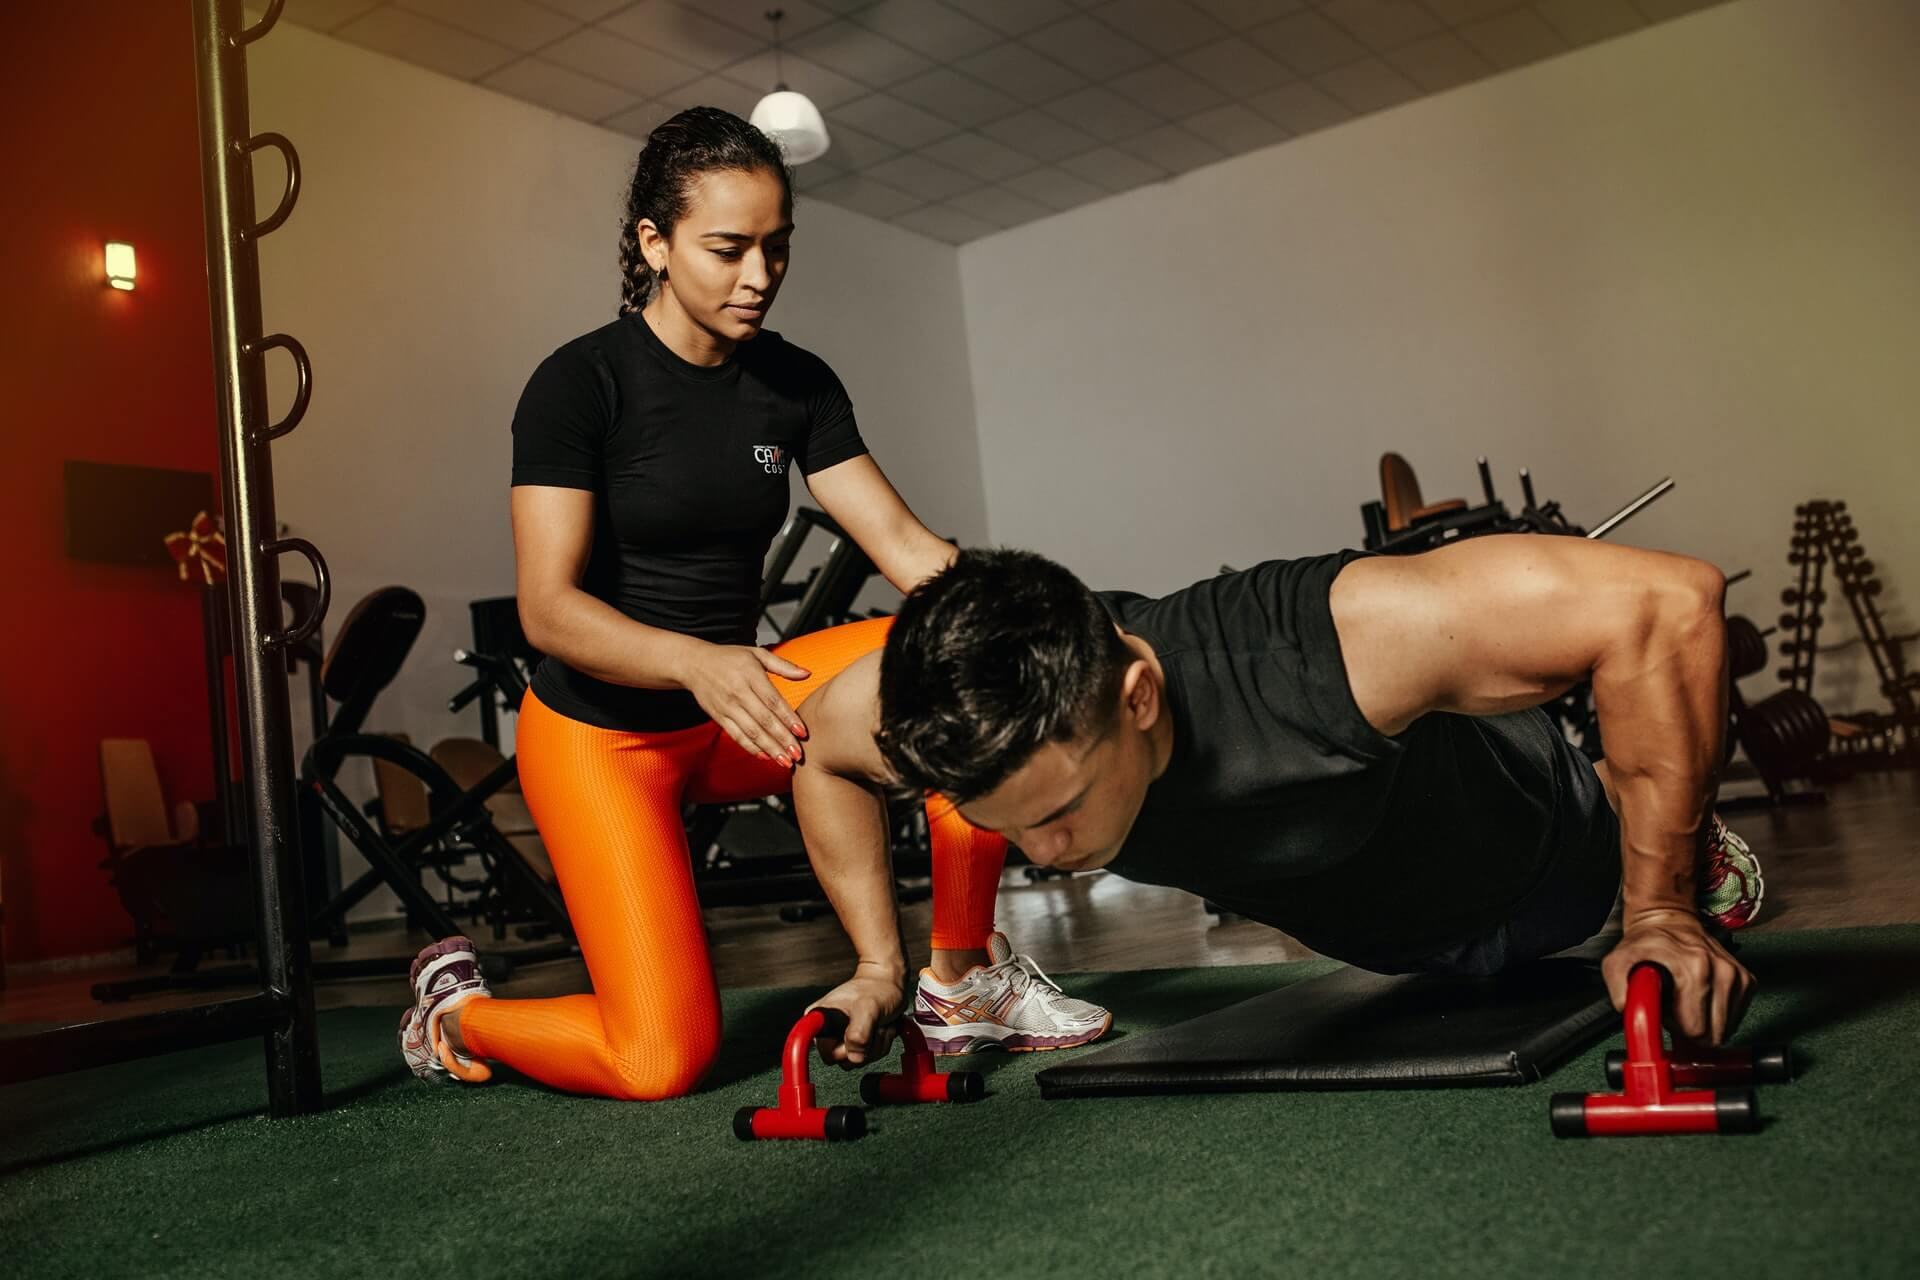 Trainer assisting someone doing pushups